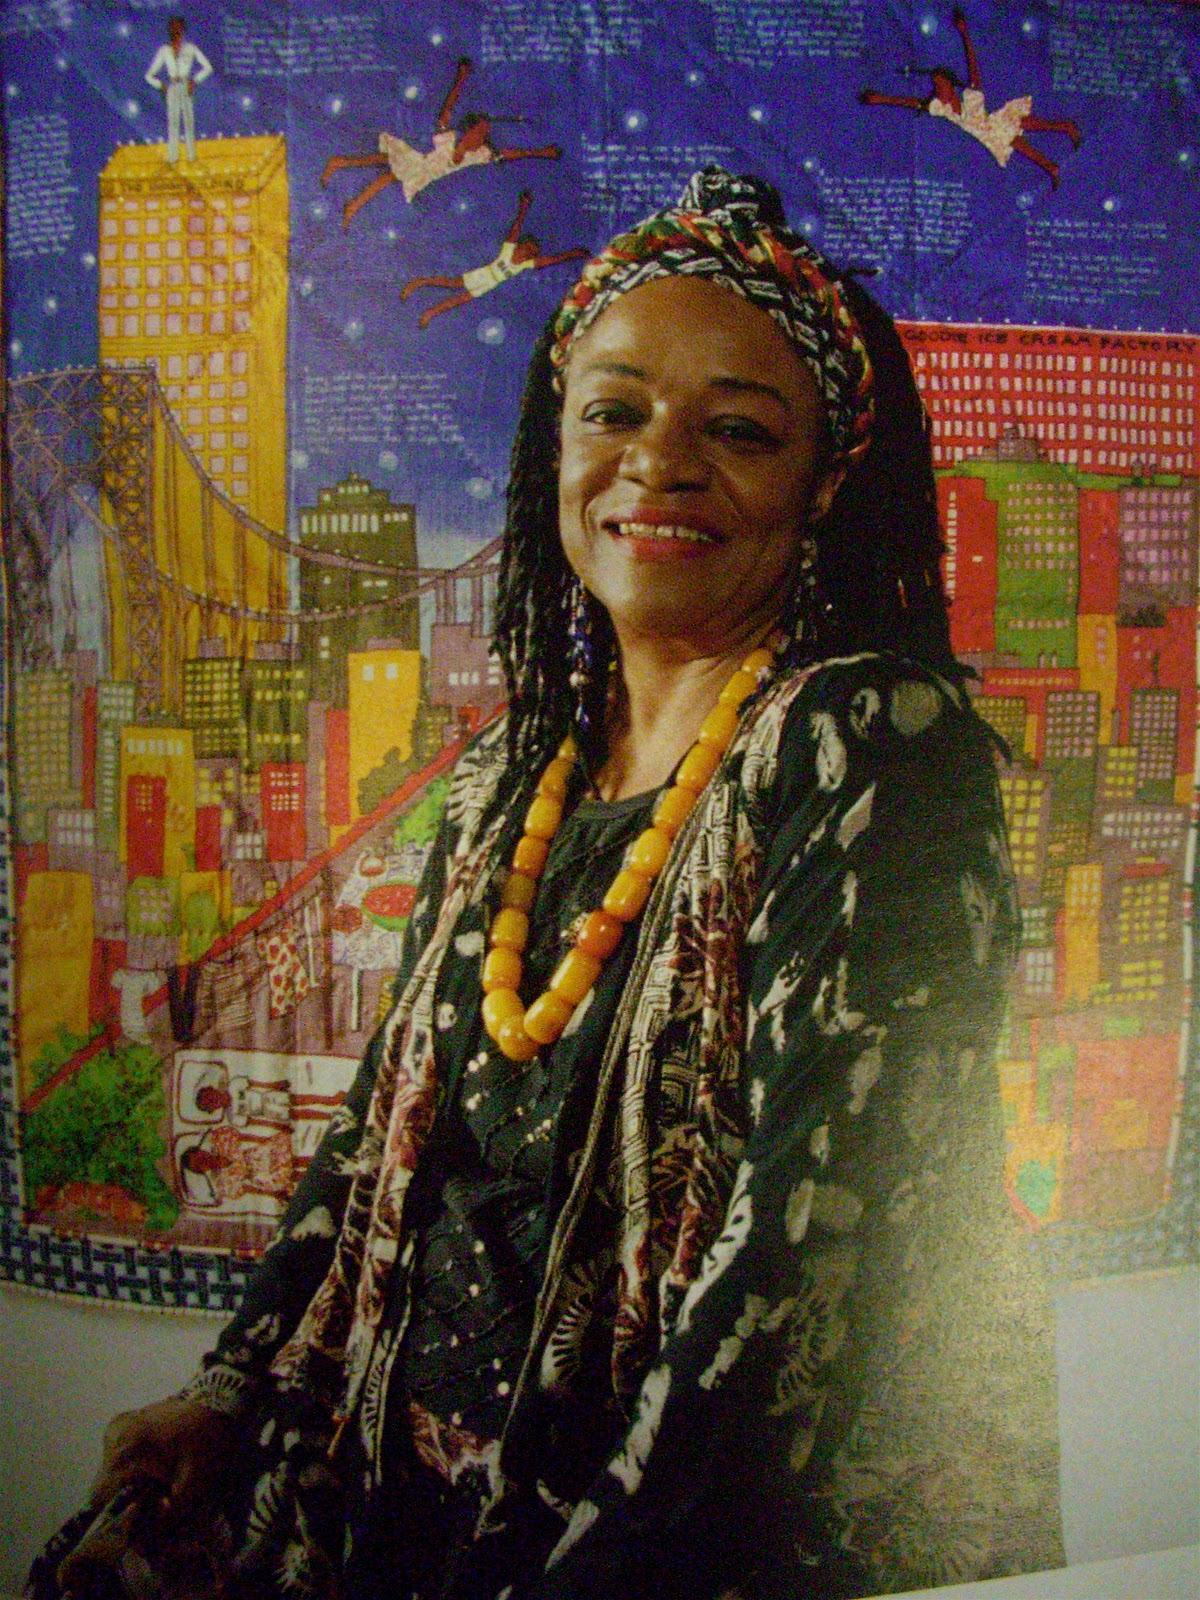 faith ringgold Current show featuring works by faith ringgold at pippy houldsworth gallery london, 6 heddon street feb 23rd - apr 28th.